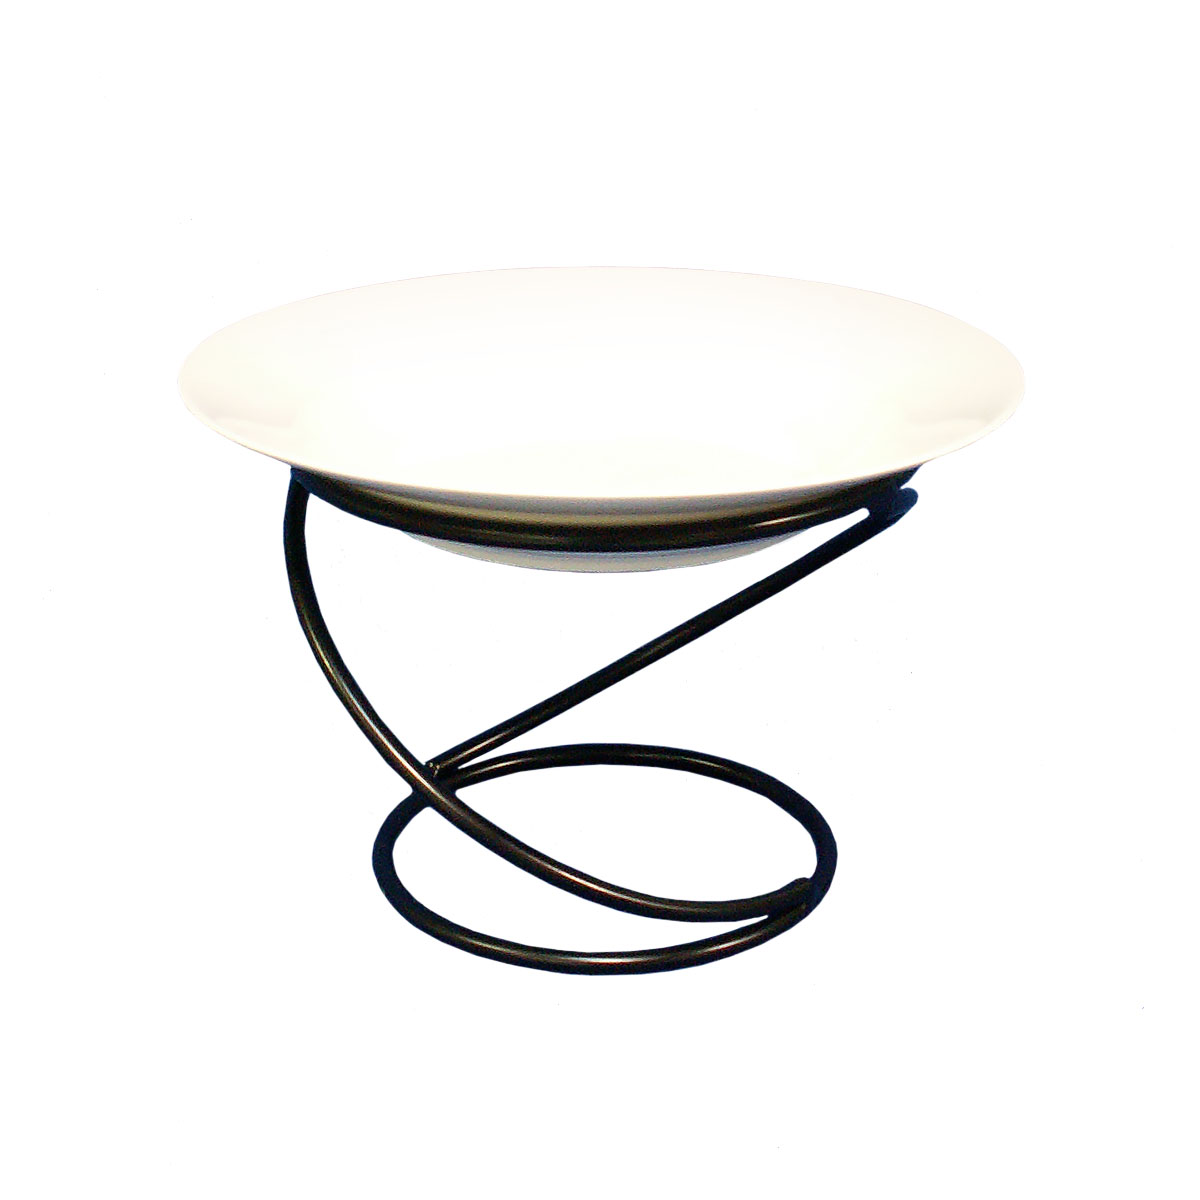 Pasta Bowl (Optional Wrought Iron Stand)